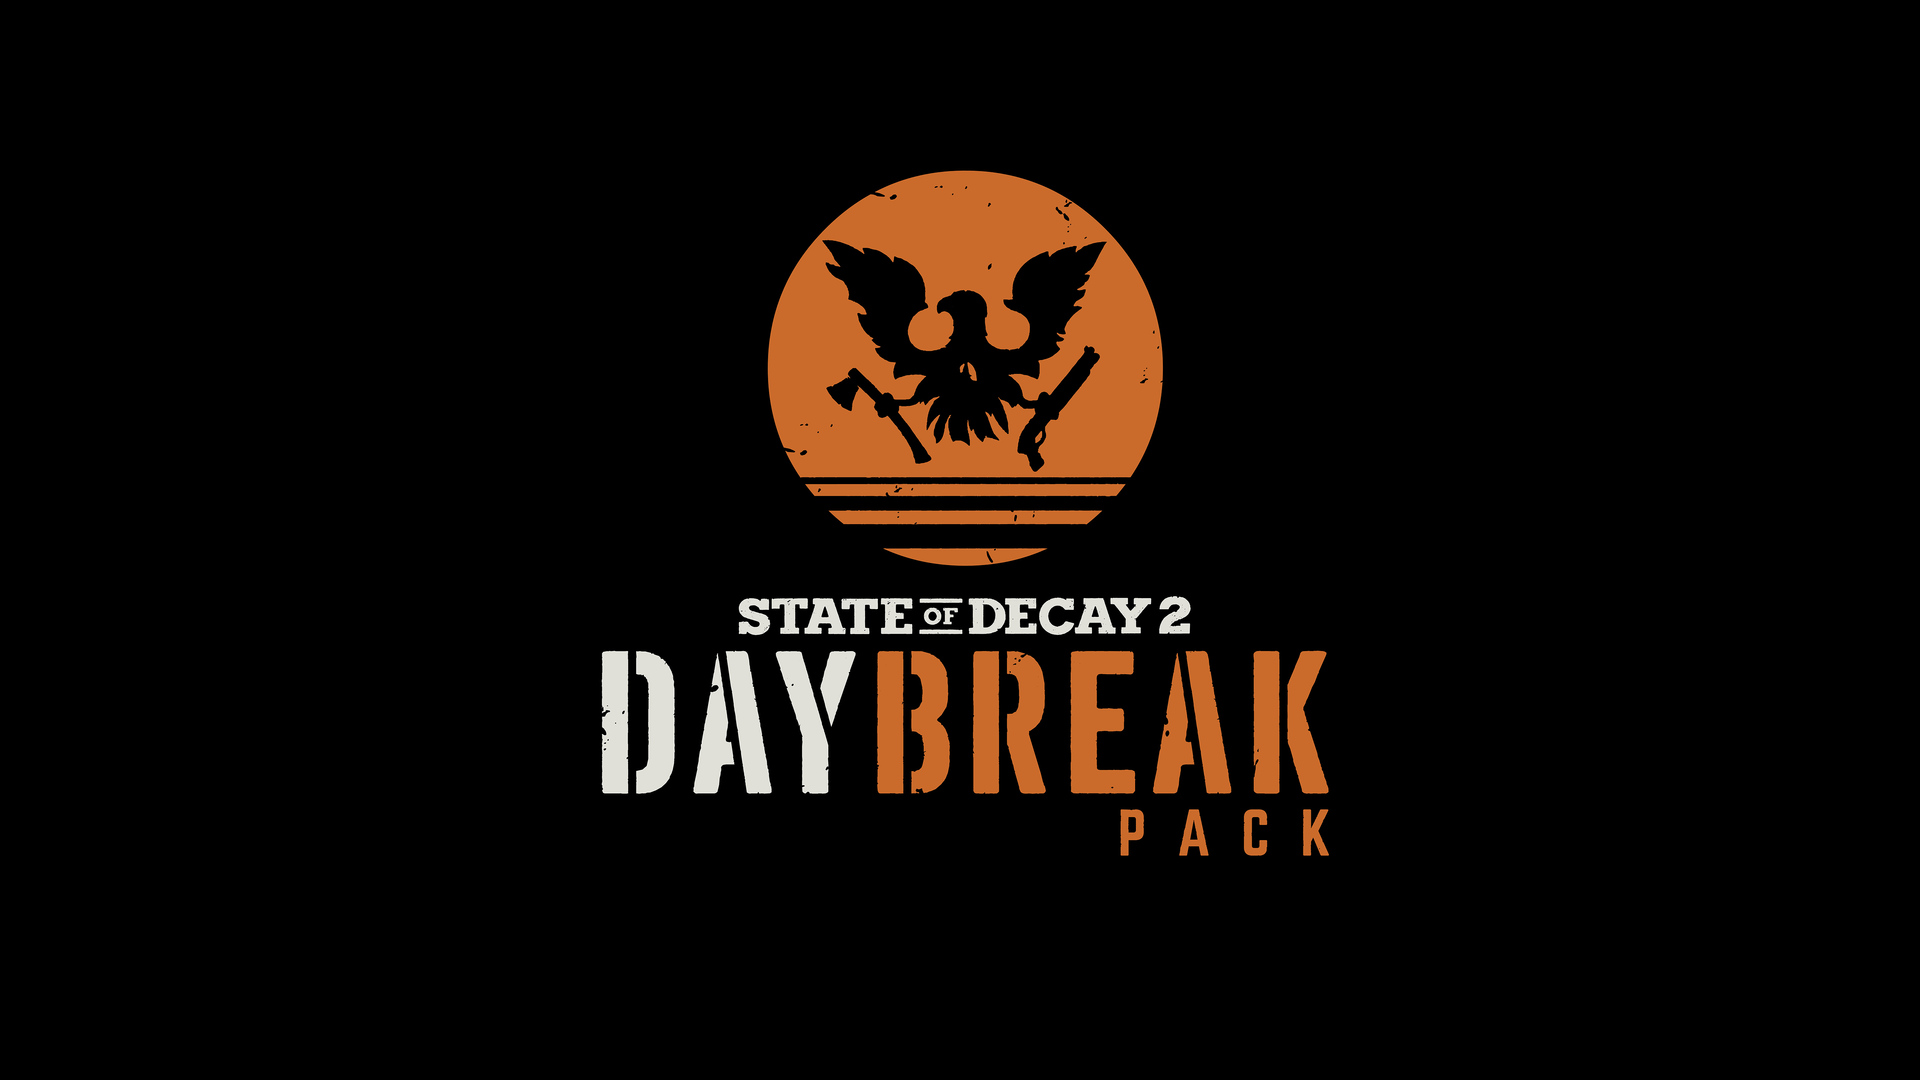 1920x1080 State Of Decay 2 Daybreak Pack 5k Laptop Full HD